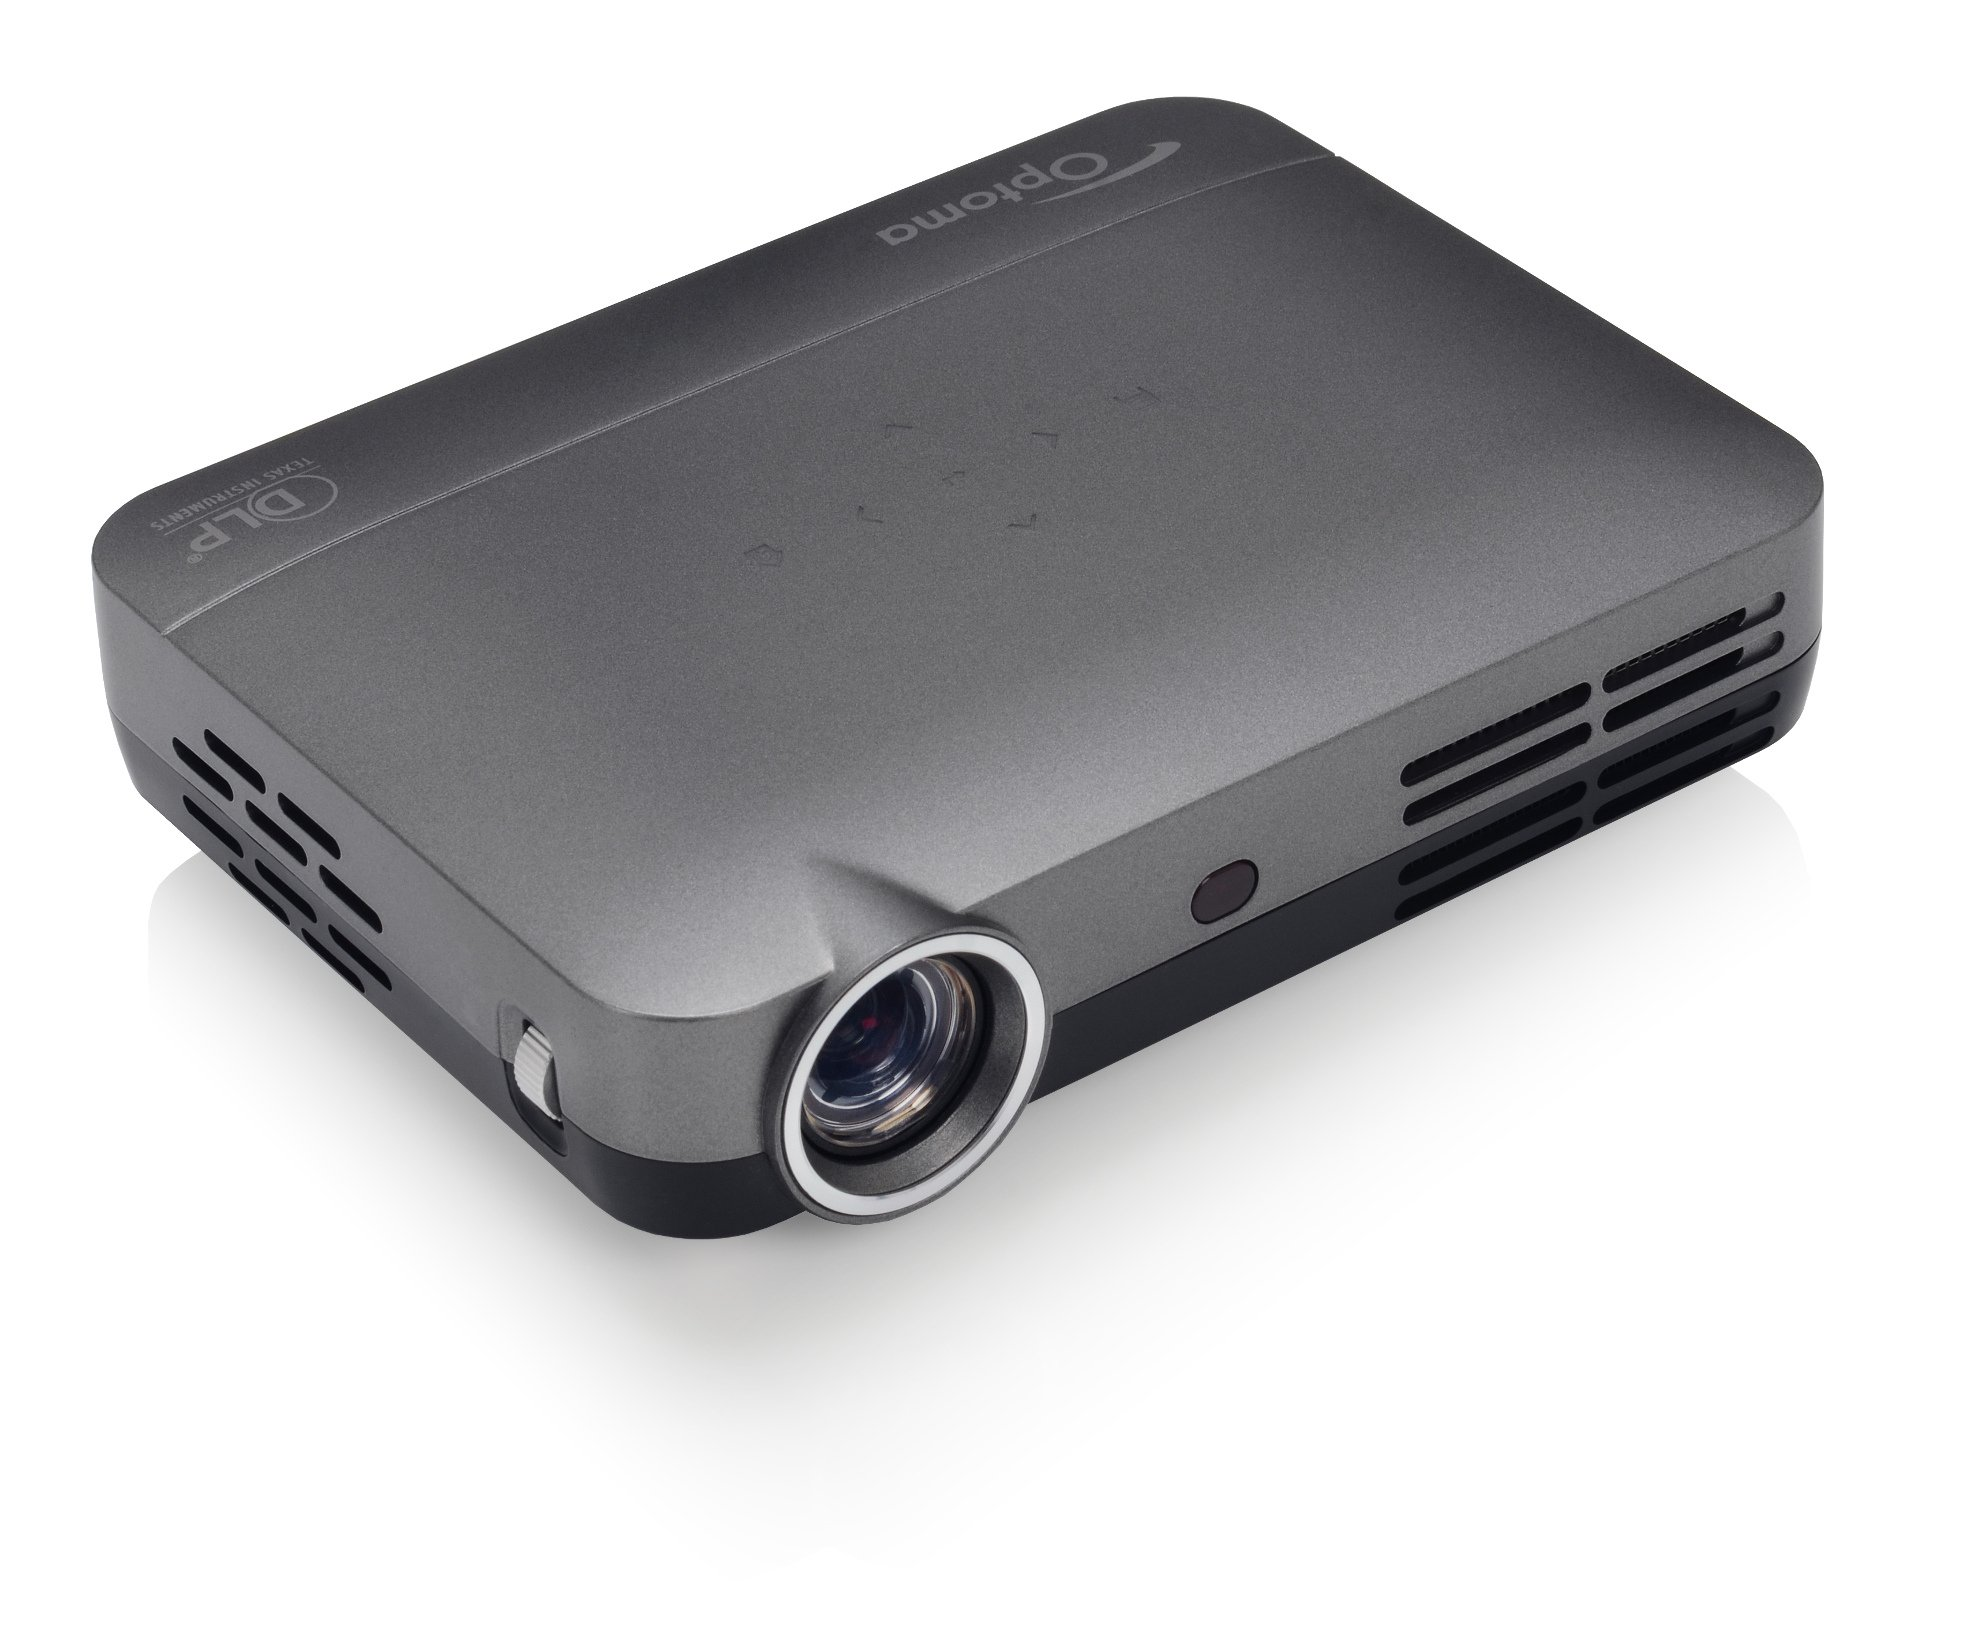 500 Lumen WXGA Mobile Android LED 720p DLP Projector with WiFi and Bluetooth